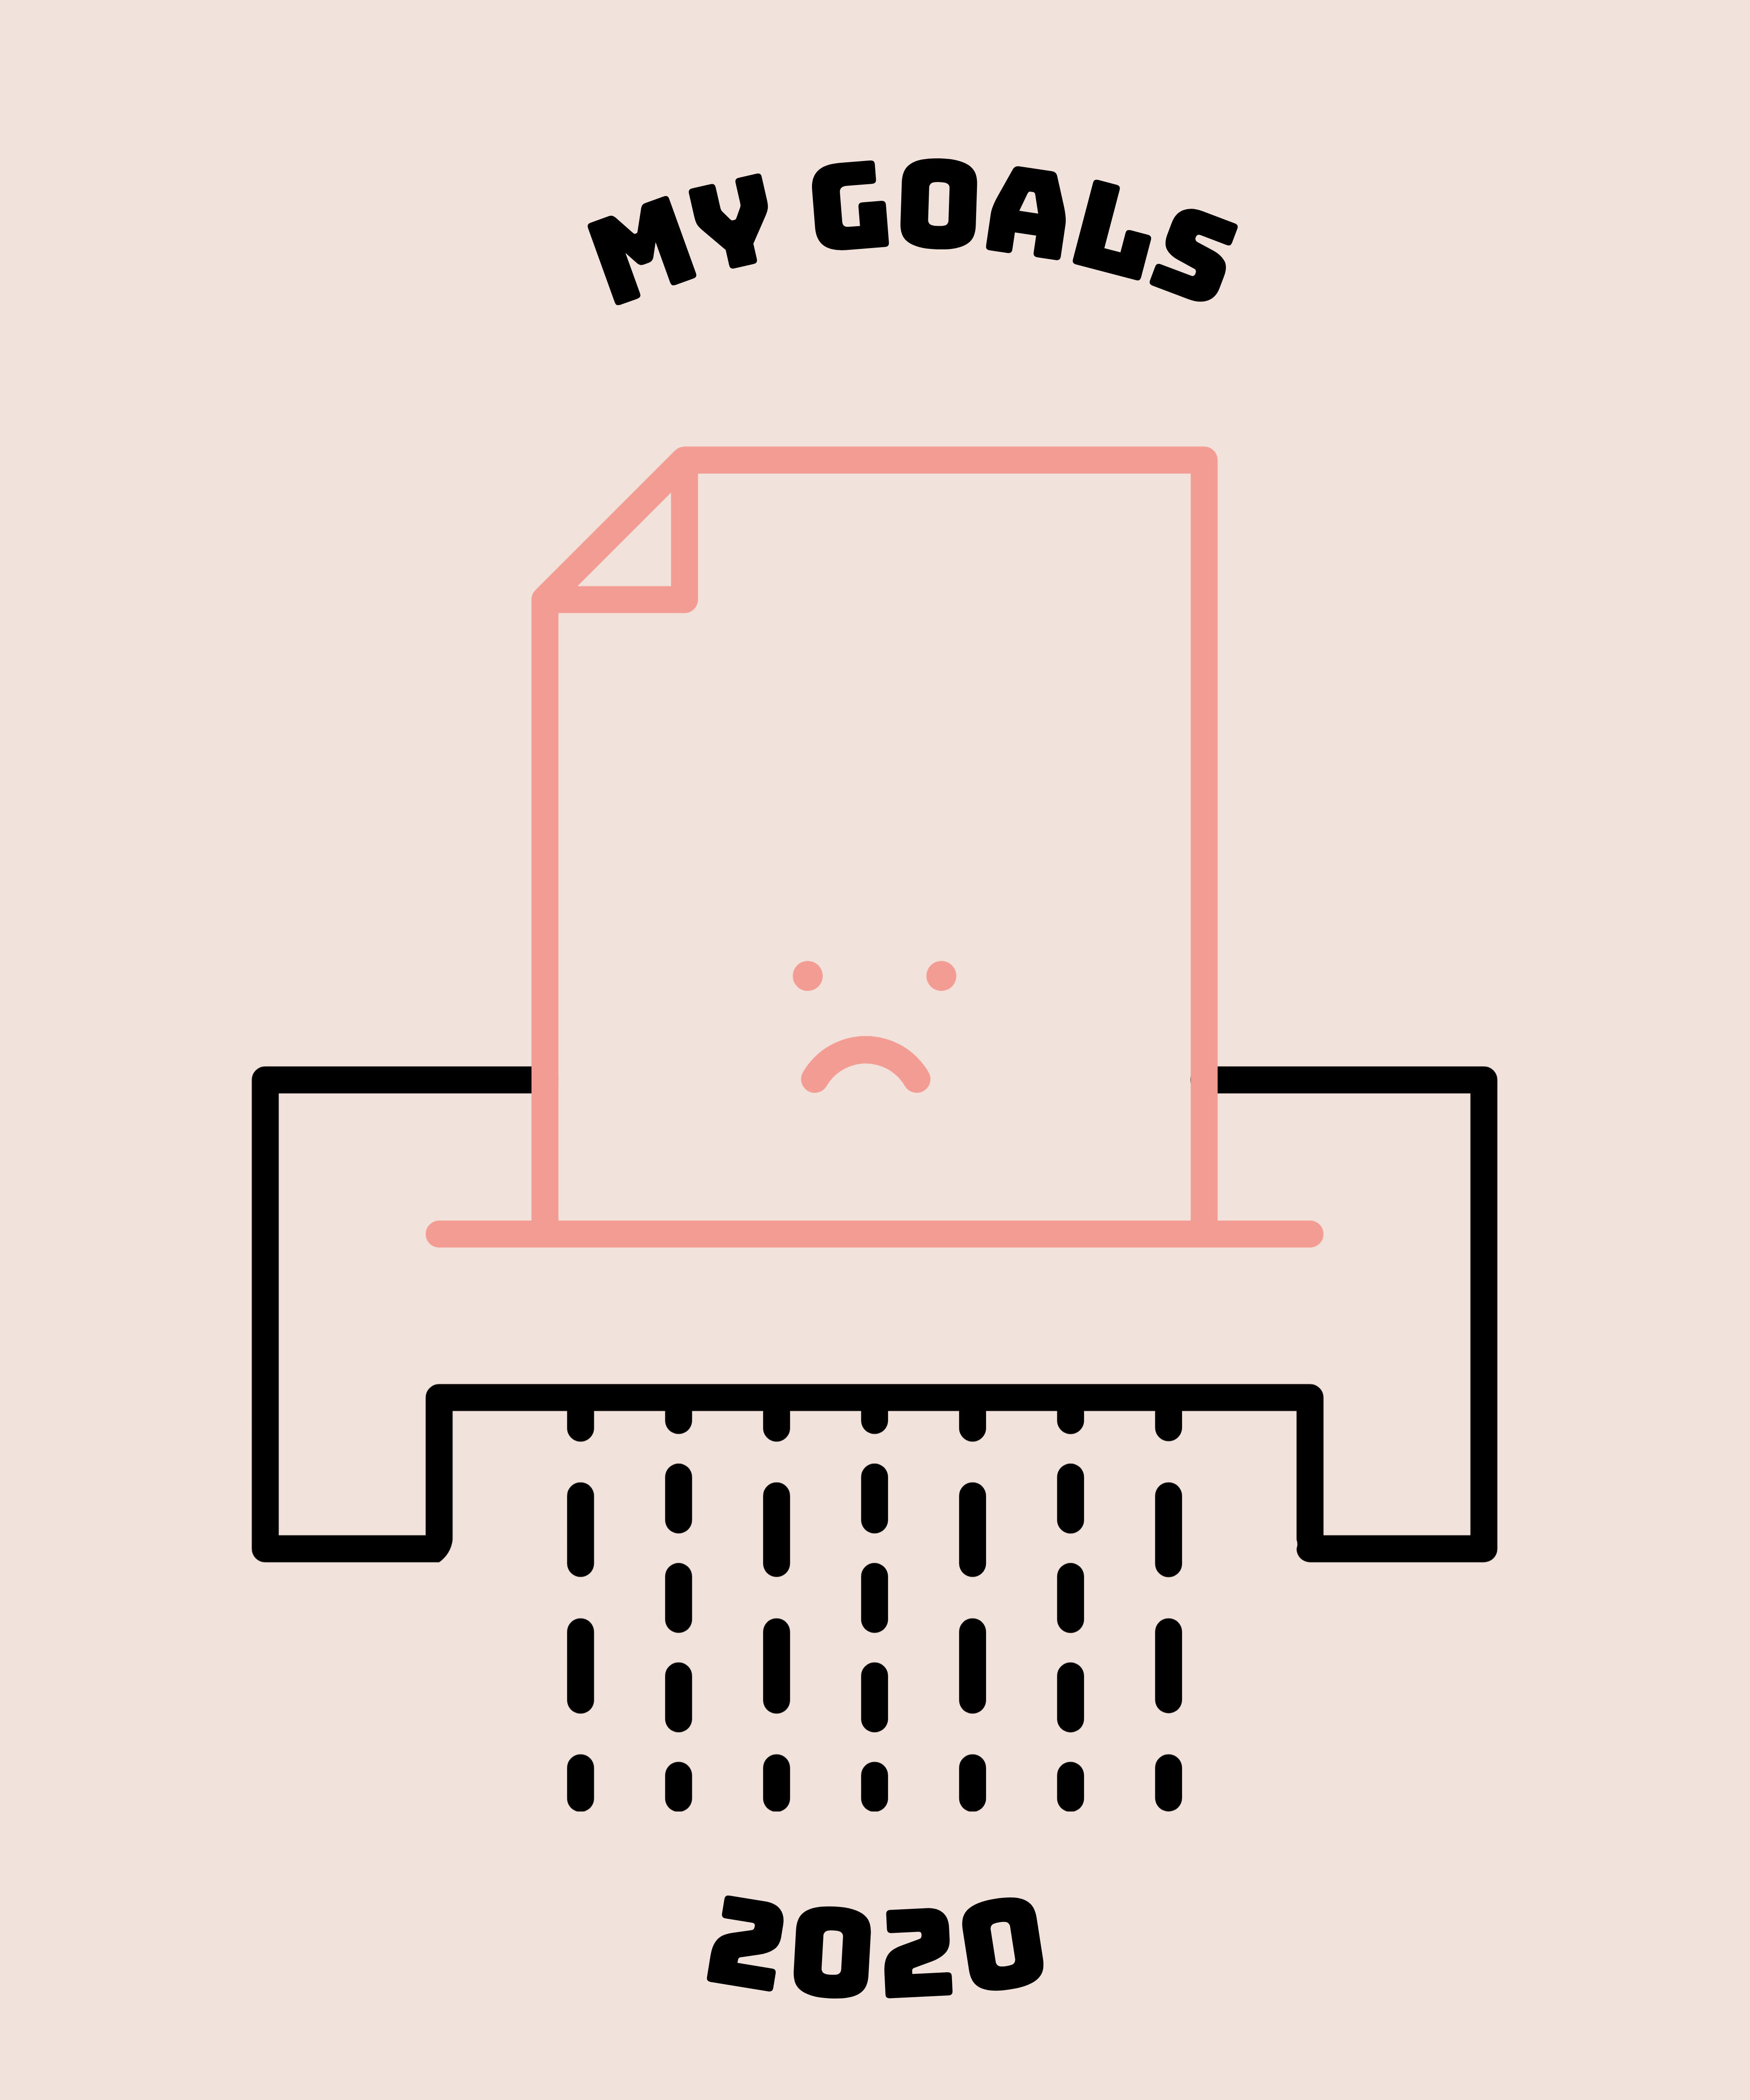 My Goals in 2020 - Graphic T-shirt